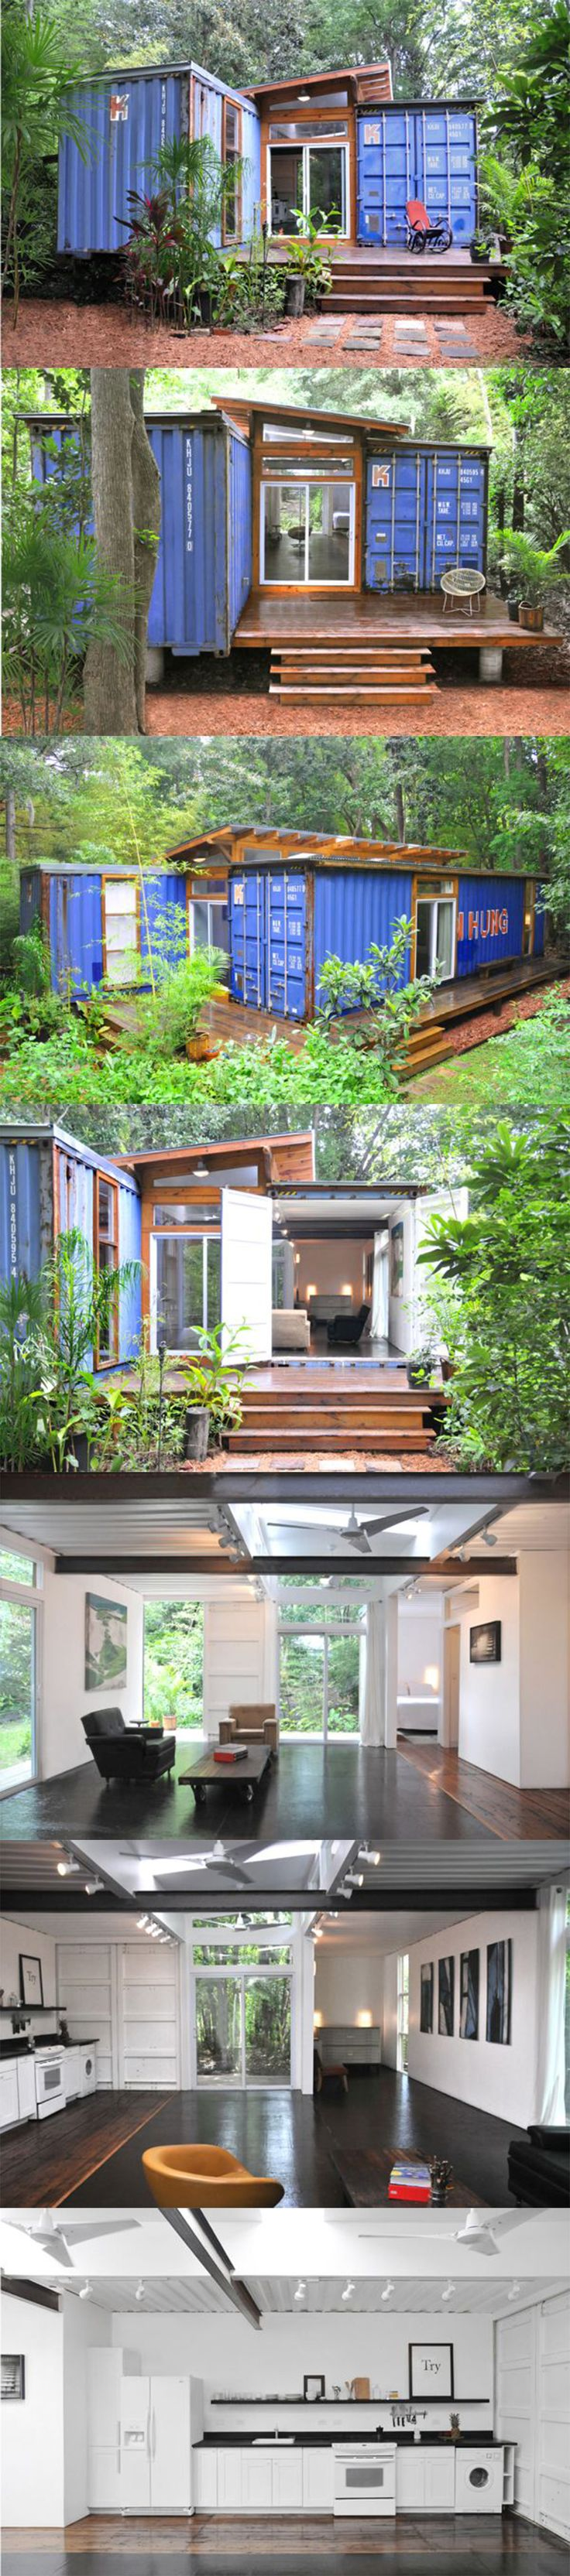 Cargo Container House Plans Why Tiny House Living Is So Relaxing Ships Country And Tiny Houses